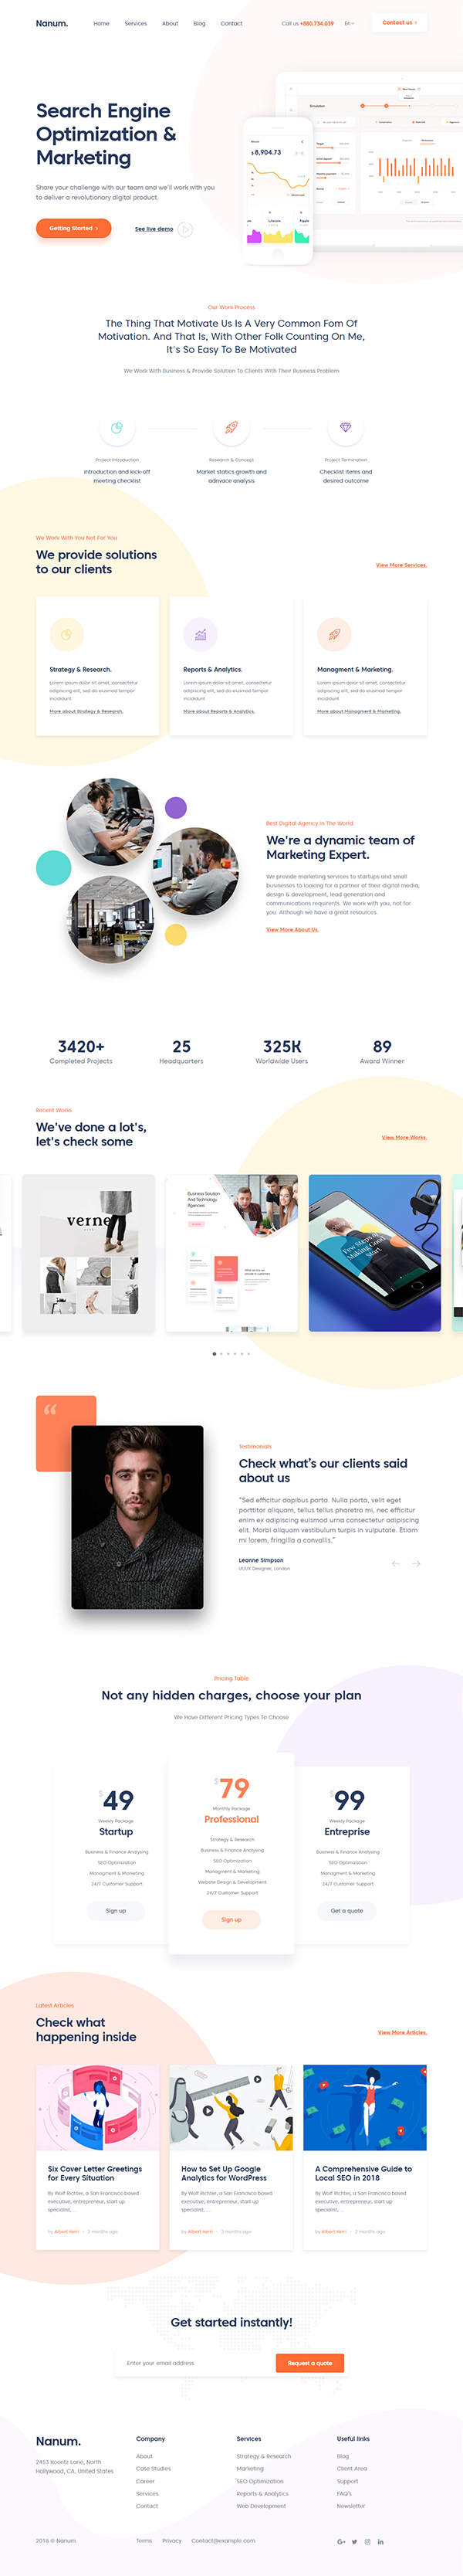 Nanum - WordPress theme of the Digital & Marketing Agency